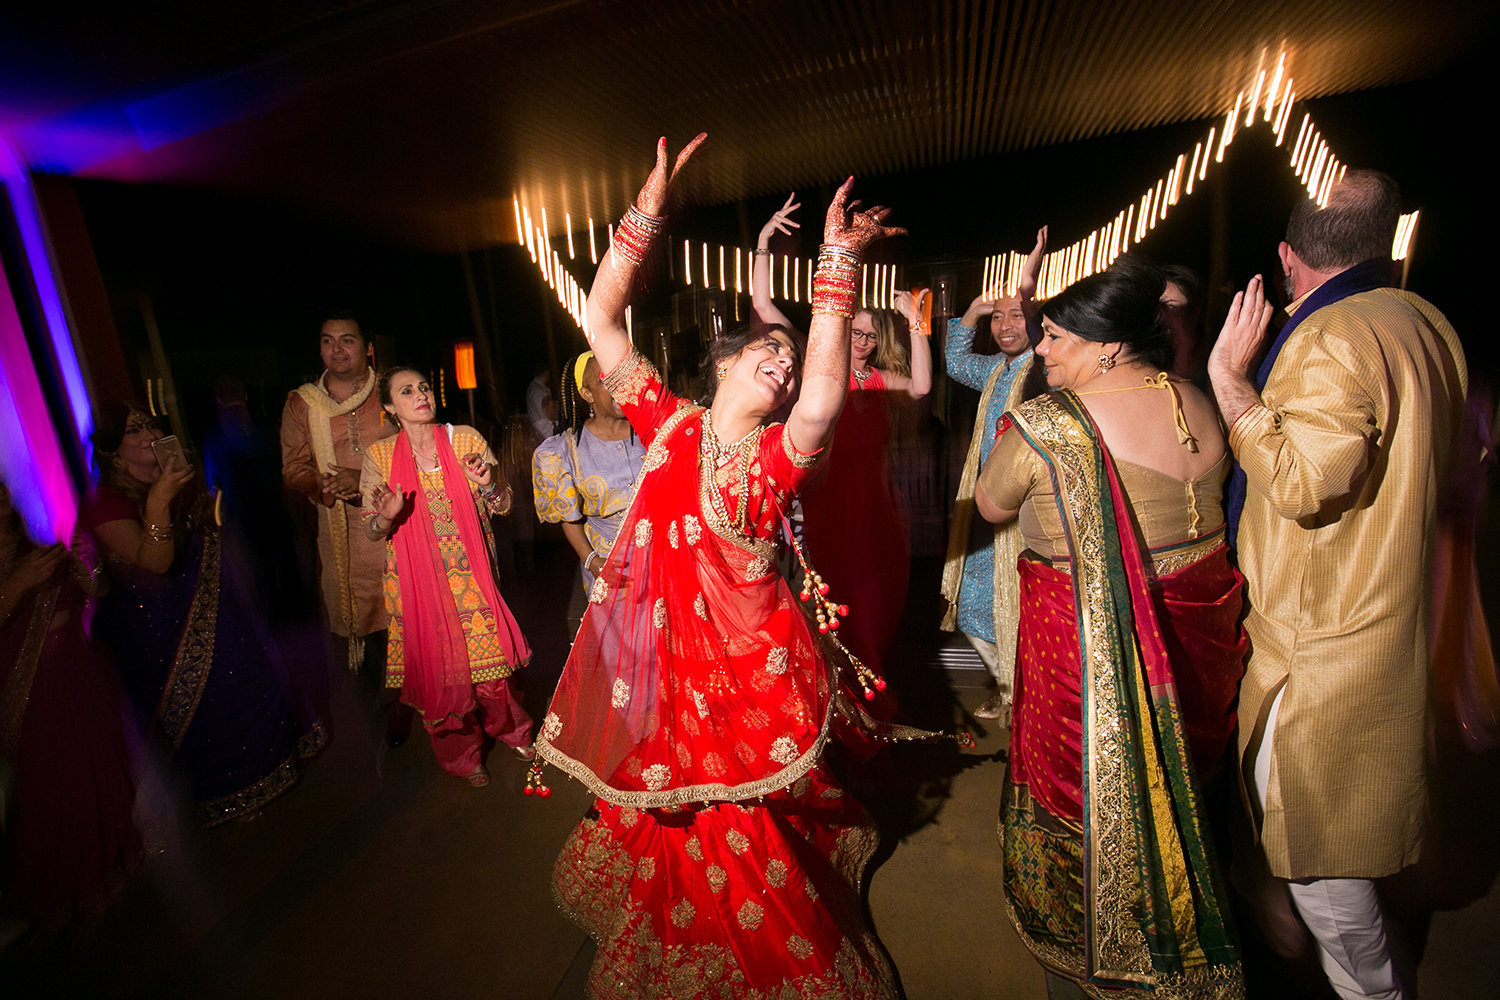 Dancing during the reception party at an Indian wedding